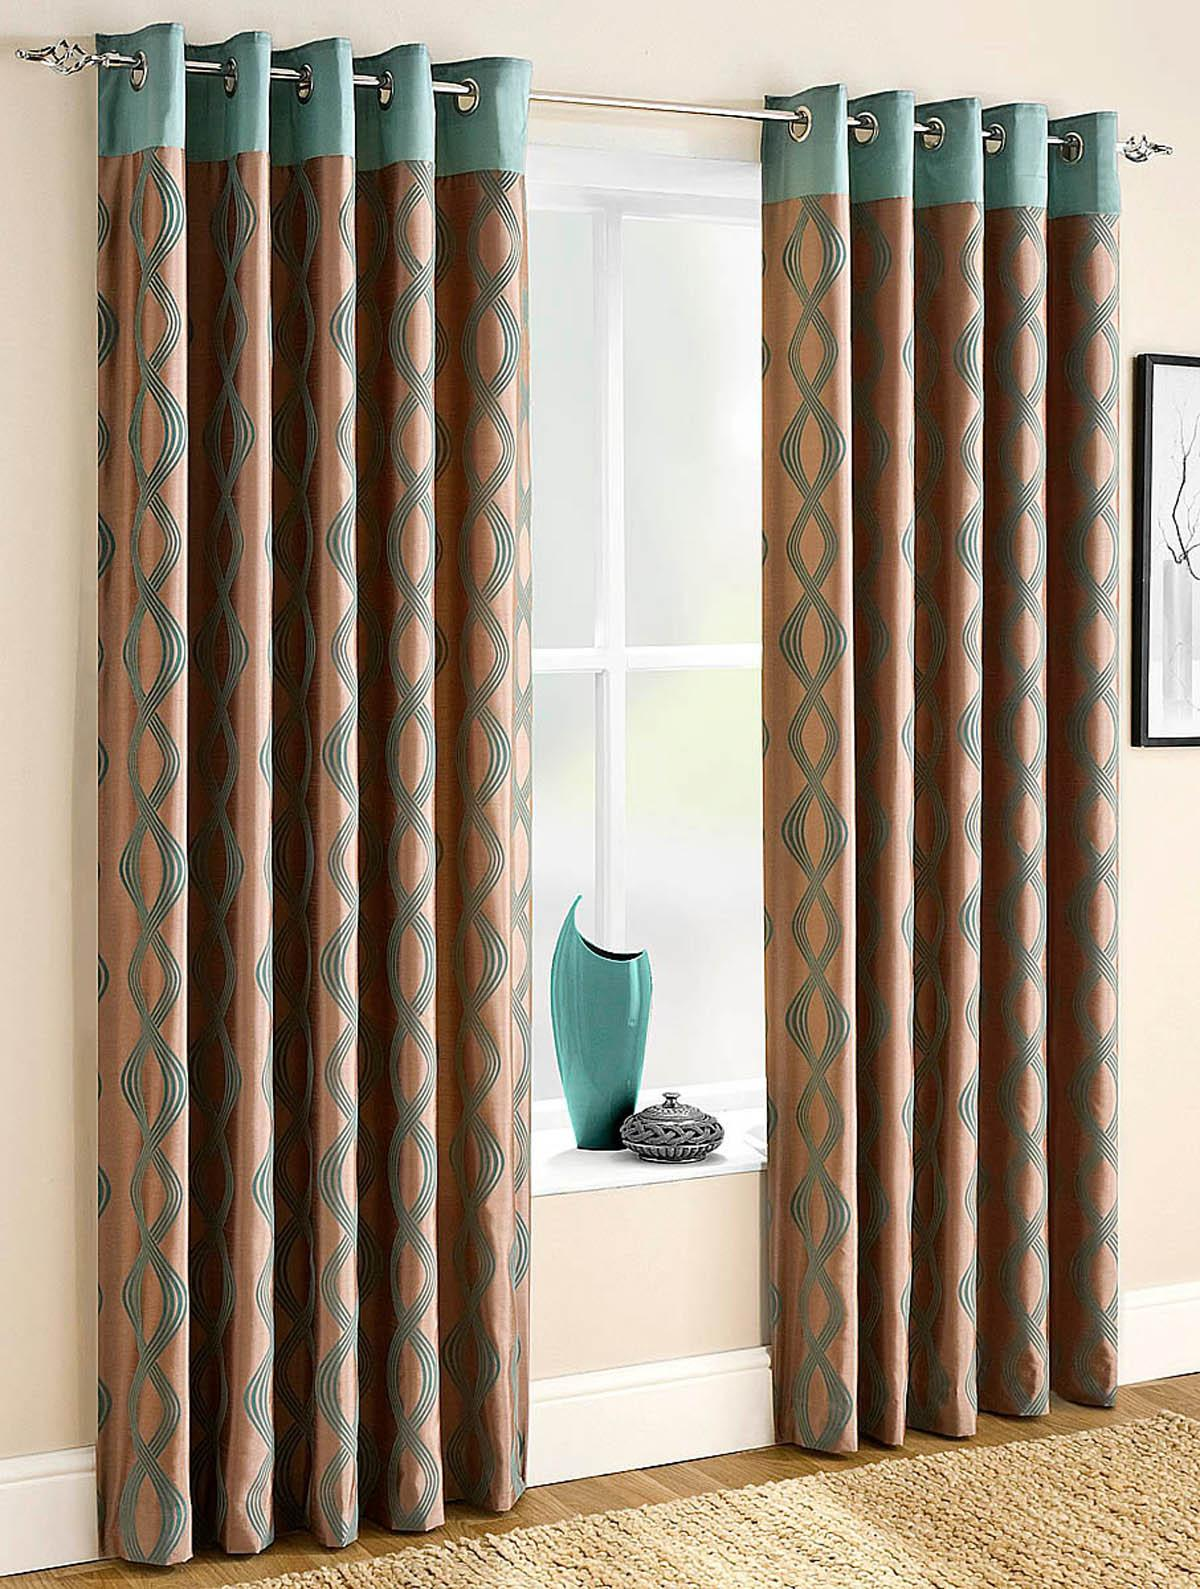 Campania Lined Eyelet Curtains Teal